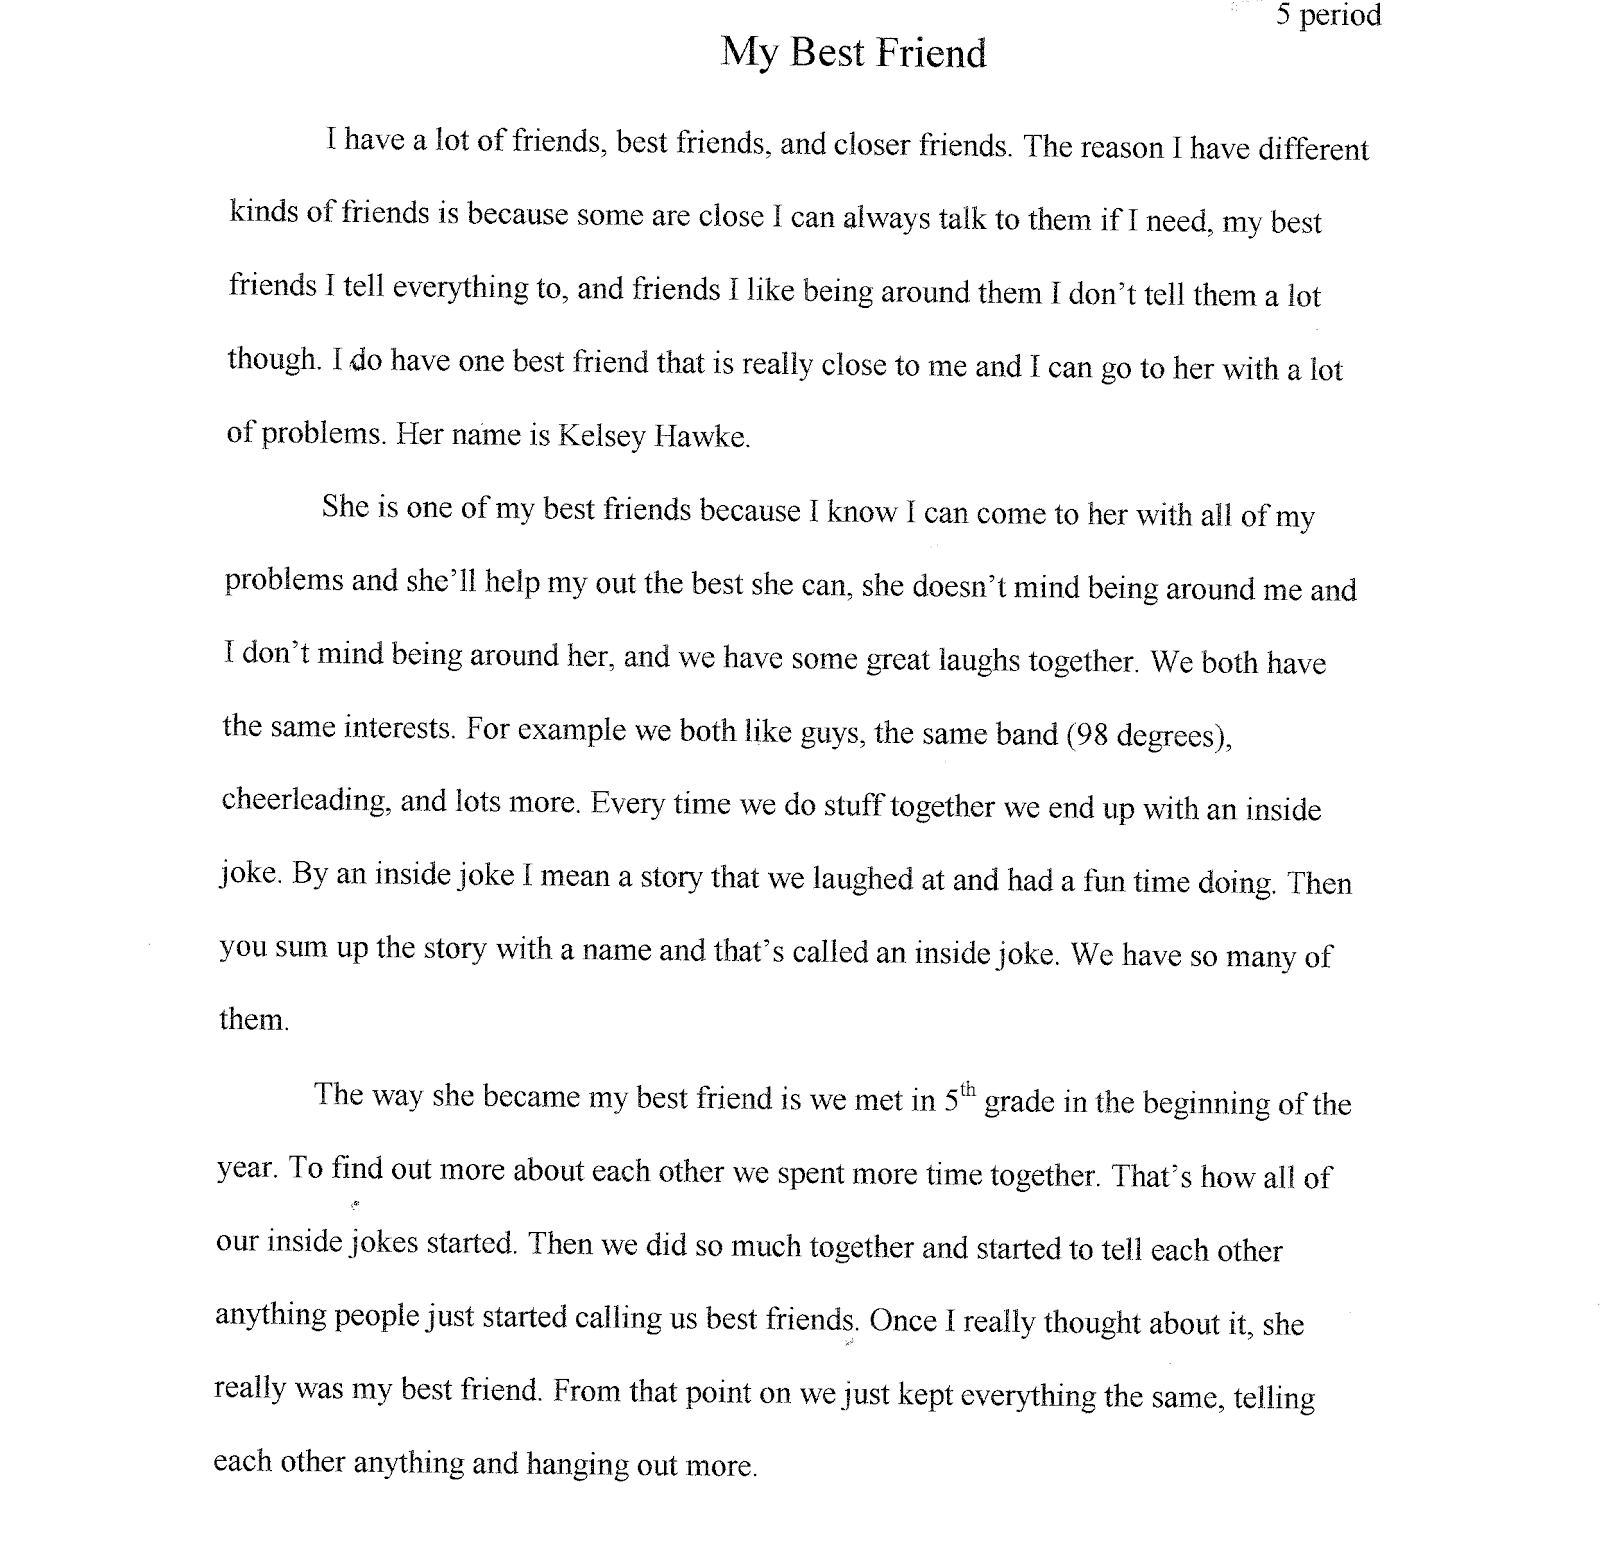 Descriptive Essay Person Example My Friend Essay An Essay On My Best Friend Essay Writing About My My Friend  Essay Essays On Literature also Immigration Essay My Best Friend Essays My Friend Essay An Essay On My Best Friend  Rich Dad Poor Dad Essay